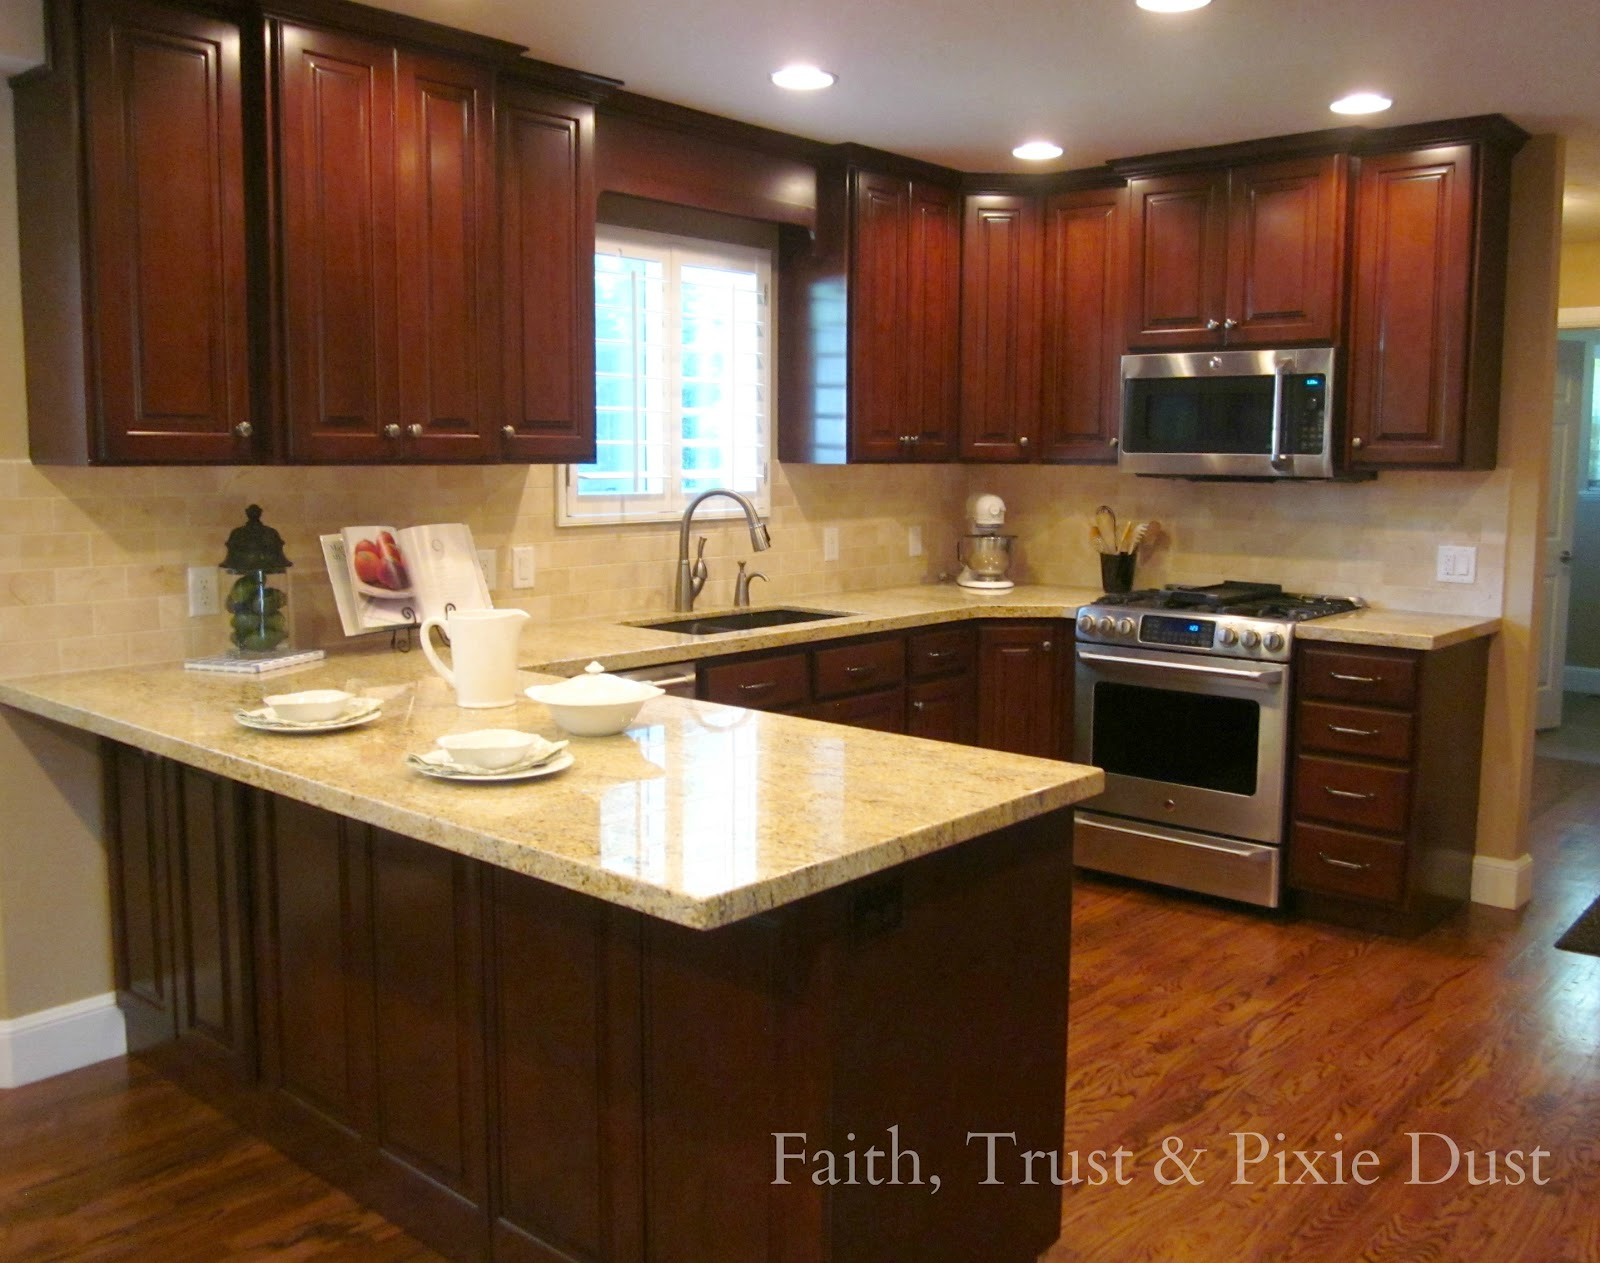 Faith, Trust, and Pixie Dust: A Spectacular Kitchen Remodel